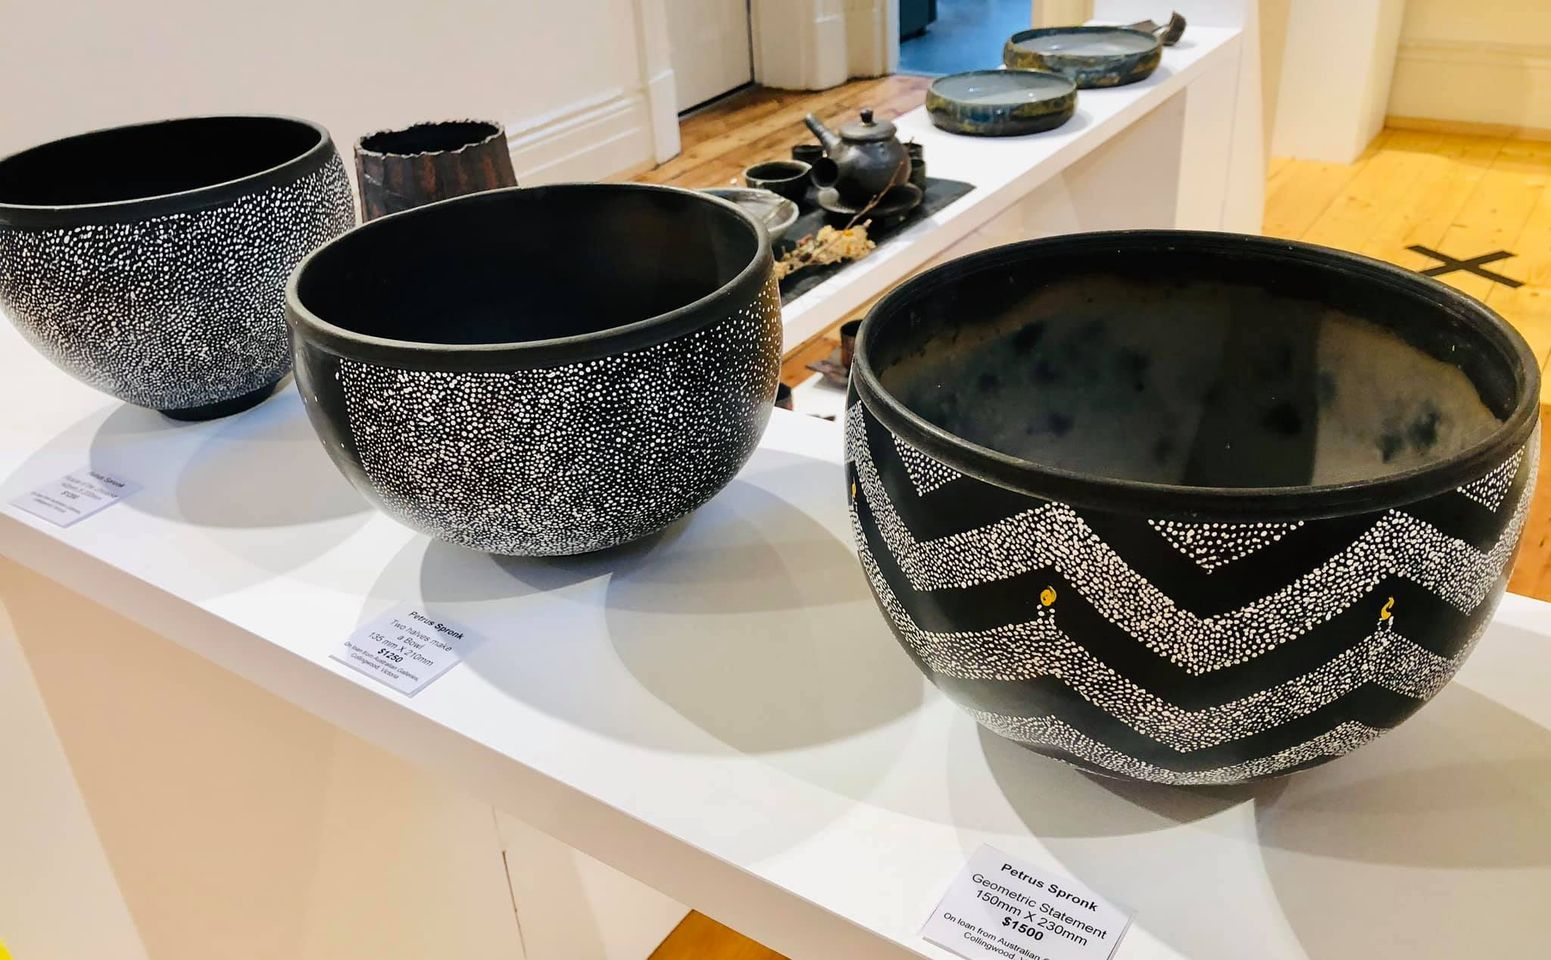 Ceramic bowls by Petrus Spronk